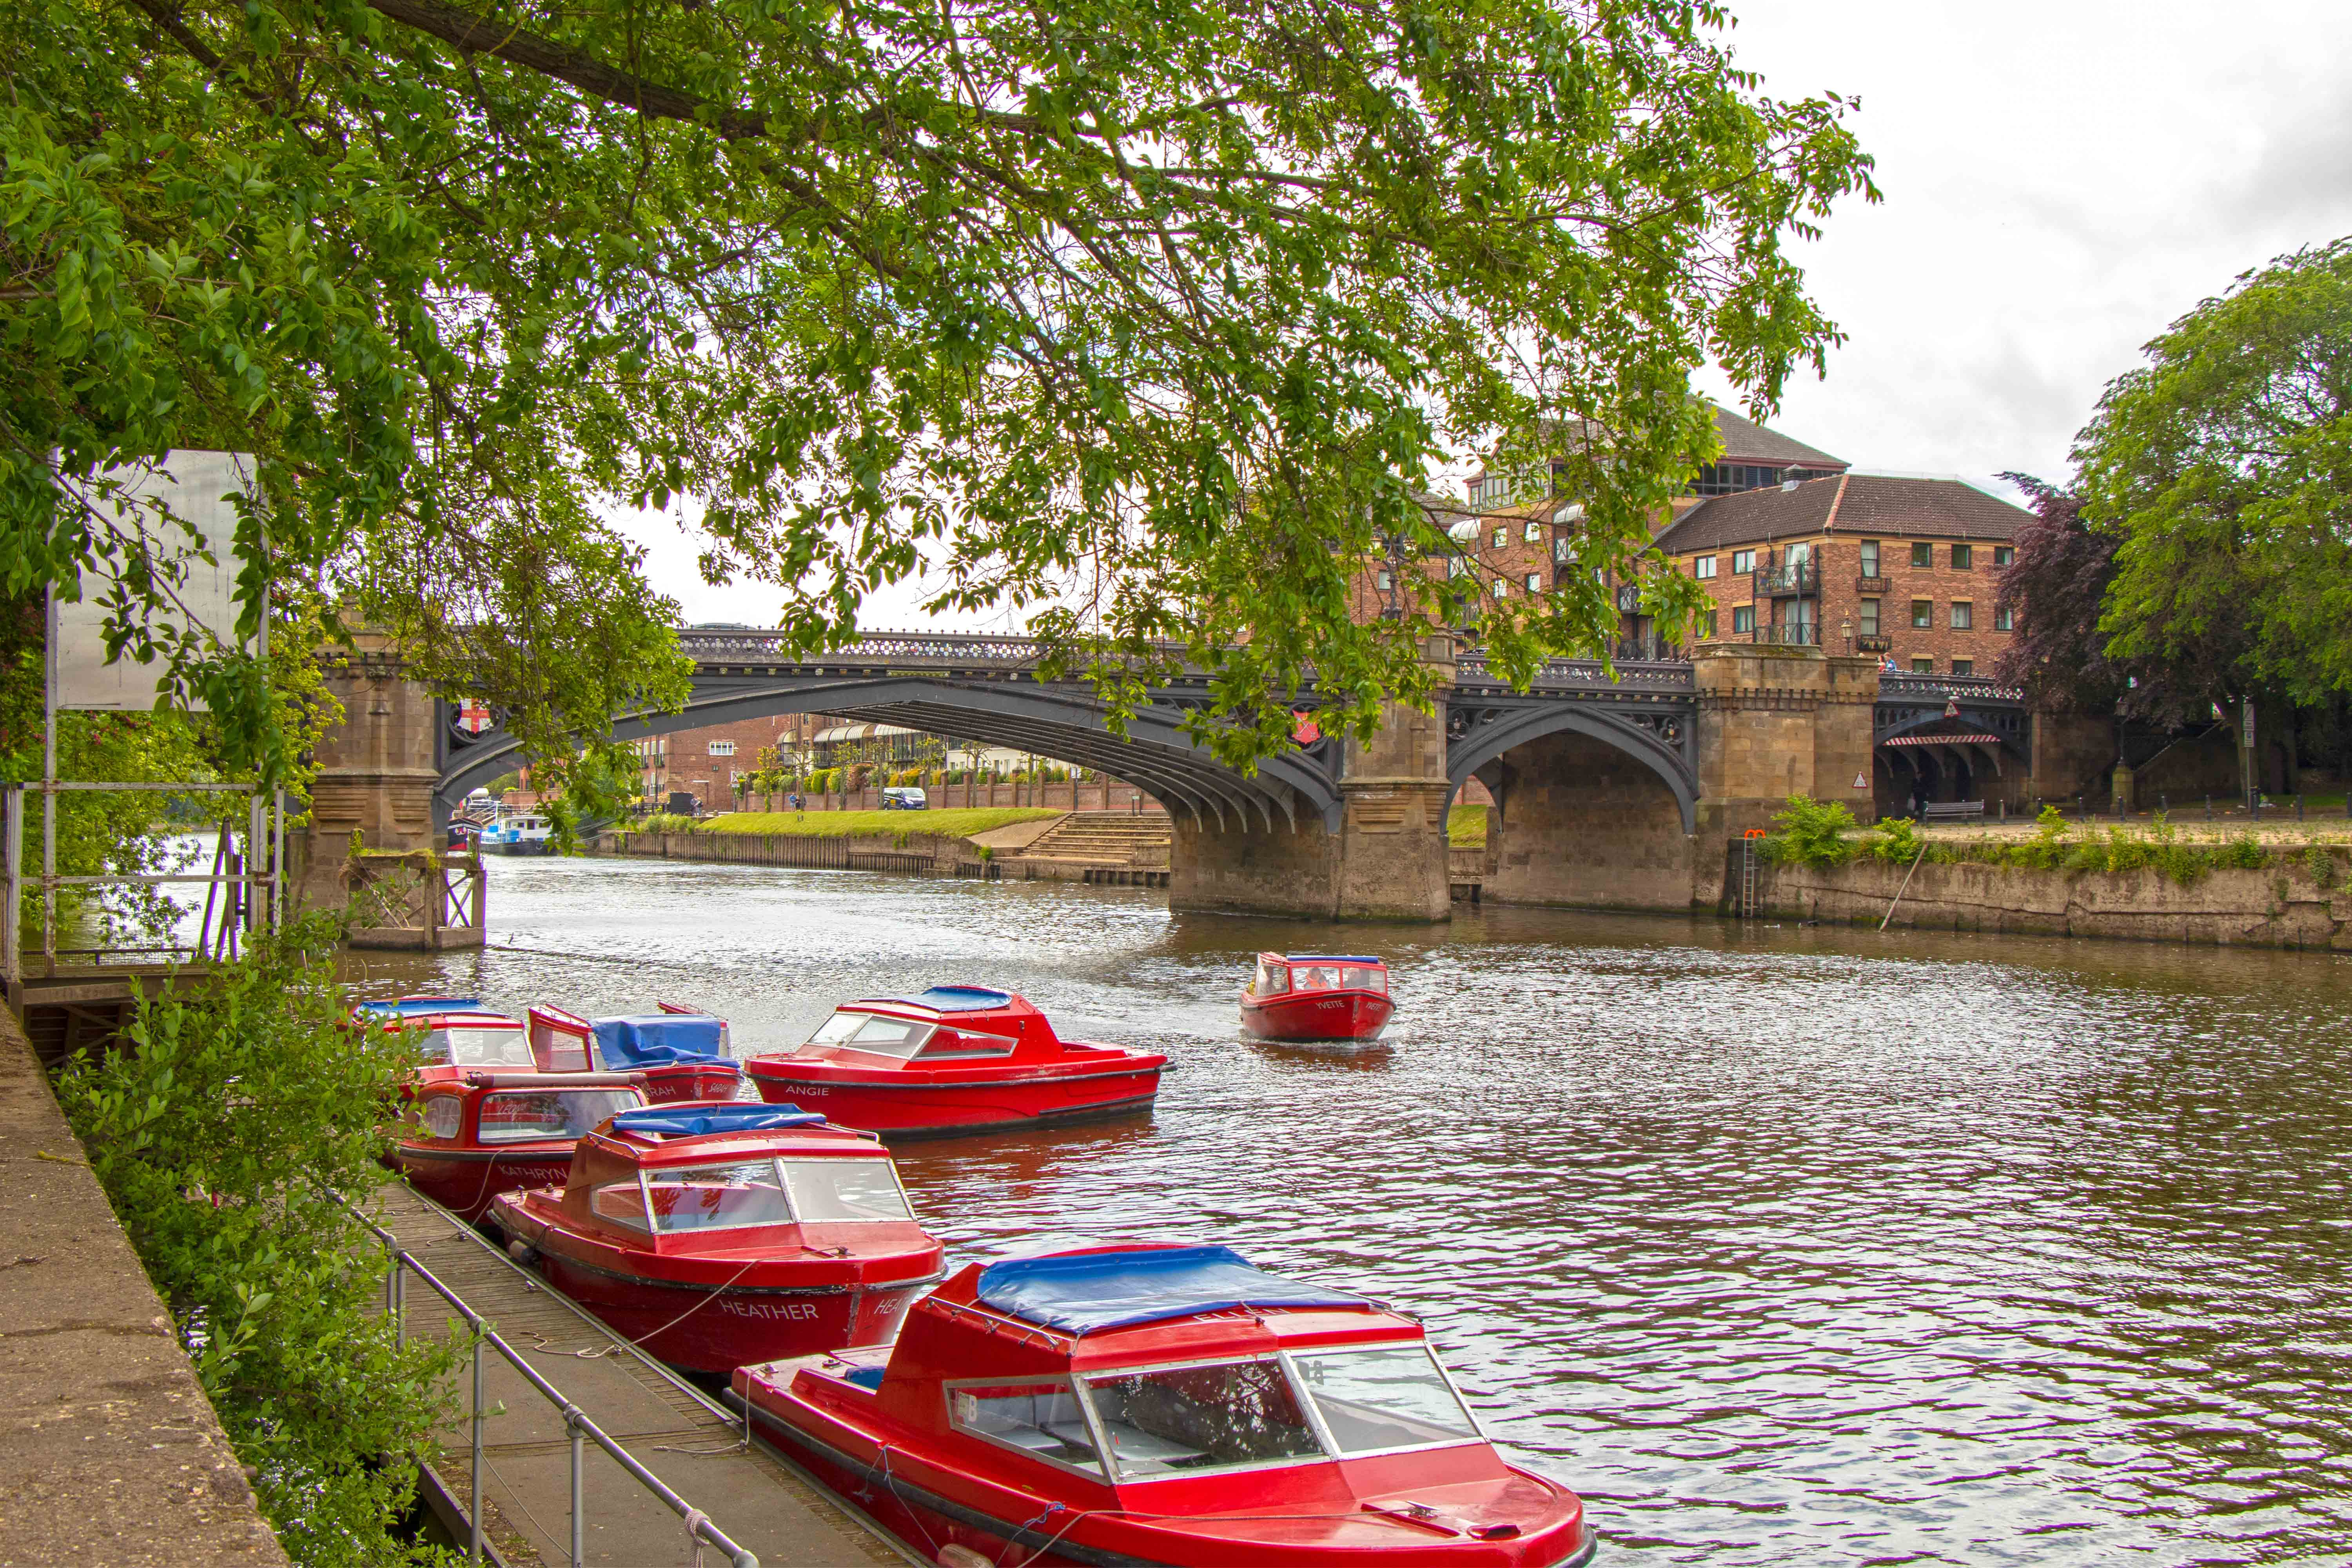 Little red boats on the river ouse, York